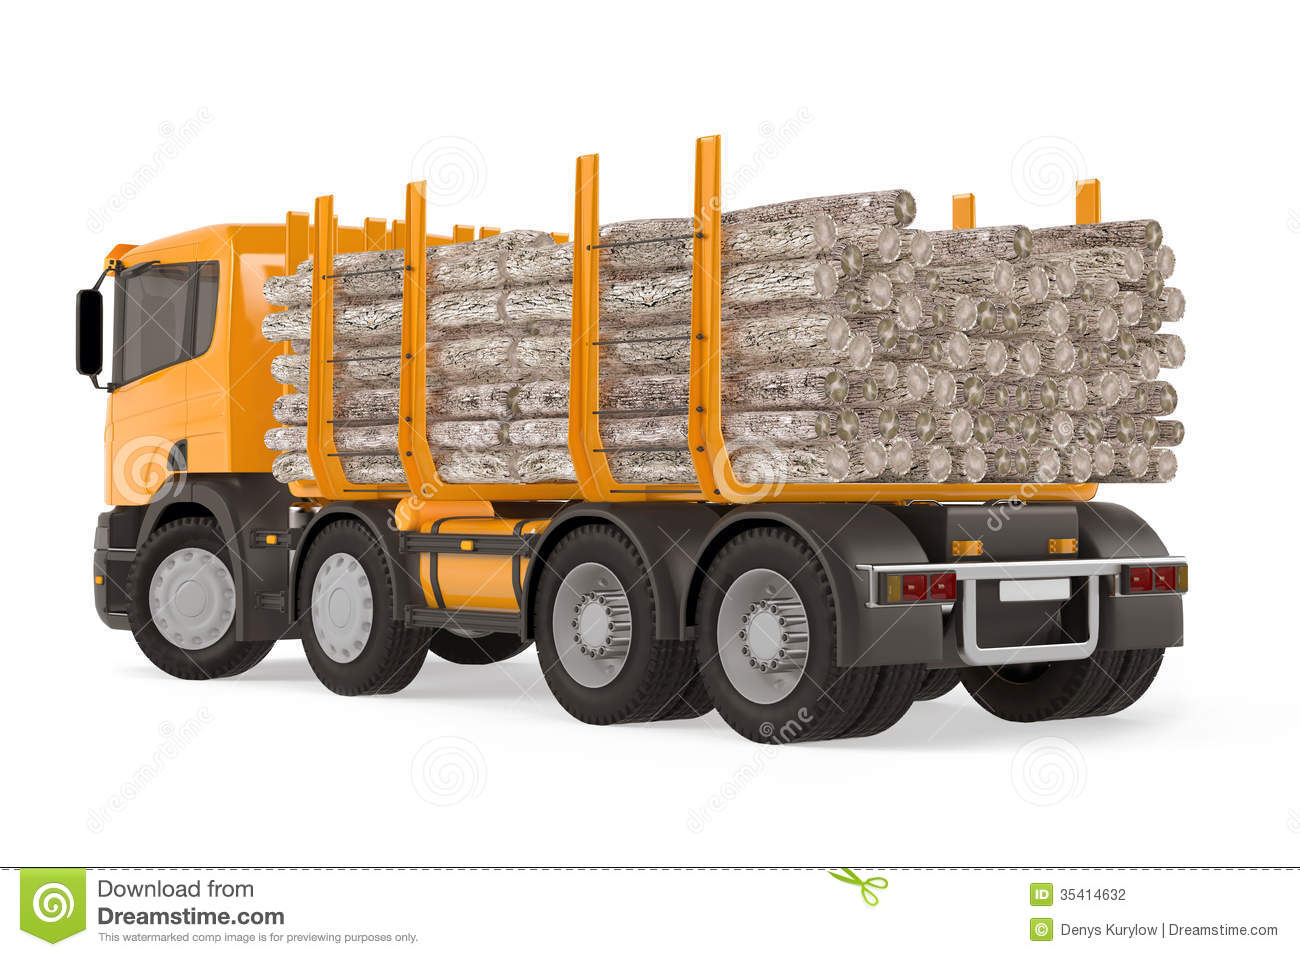 Best road transport services in Pune. Best India Road Transport has been providing major companies and Industrial Organization.